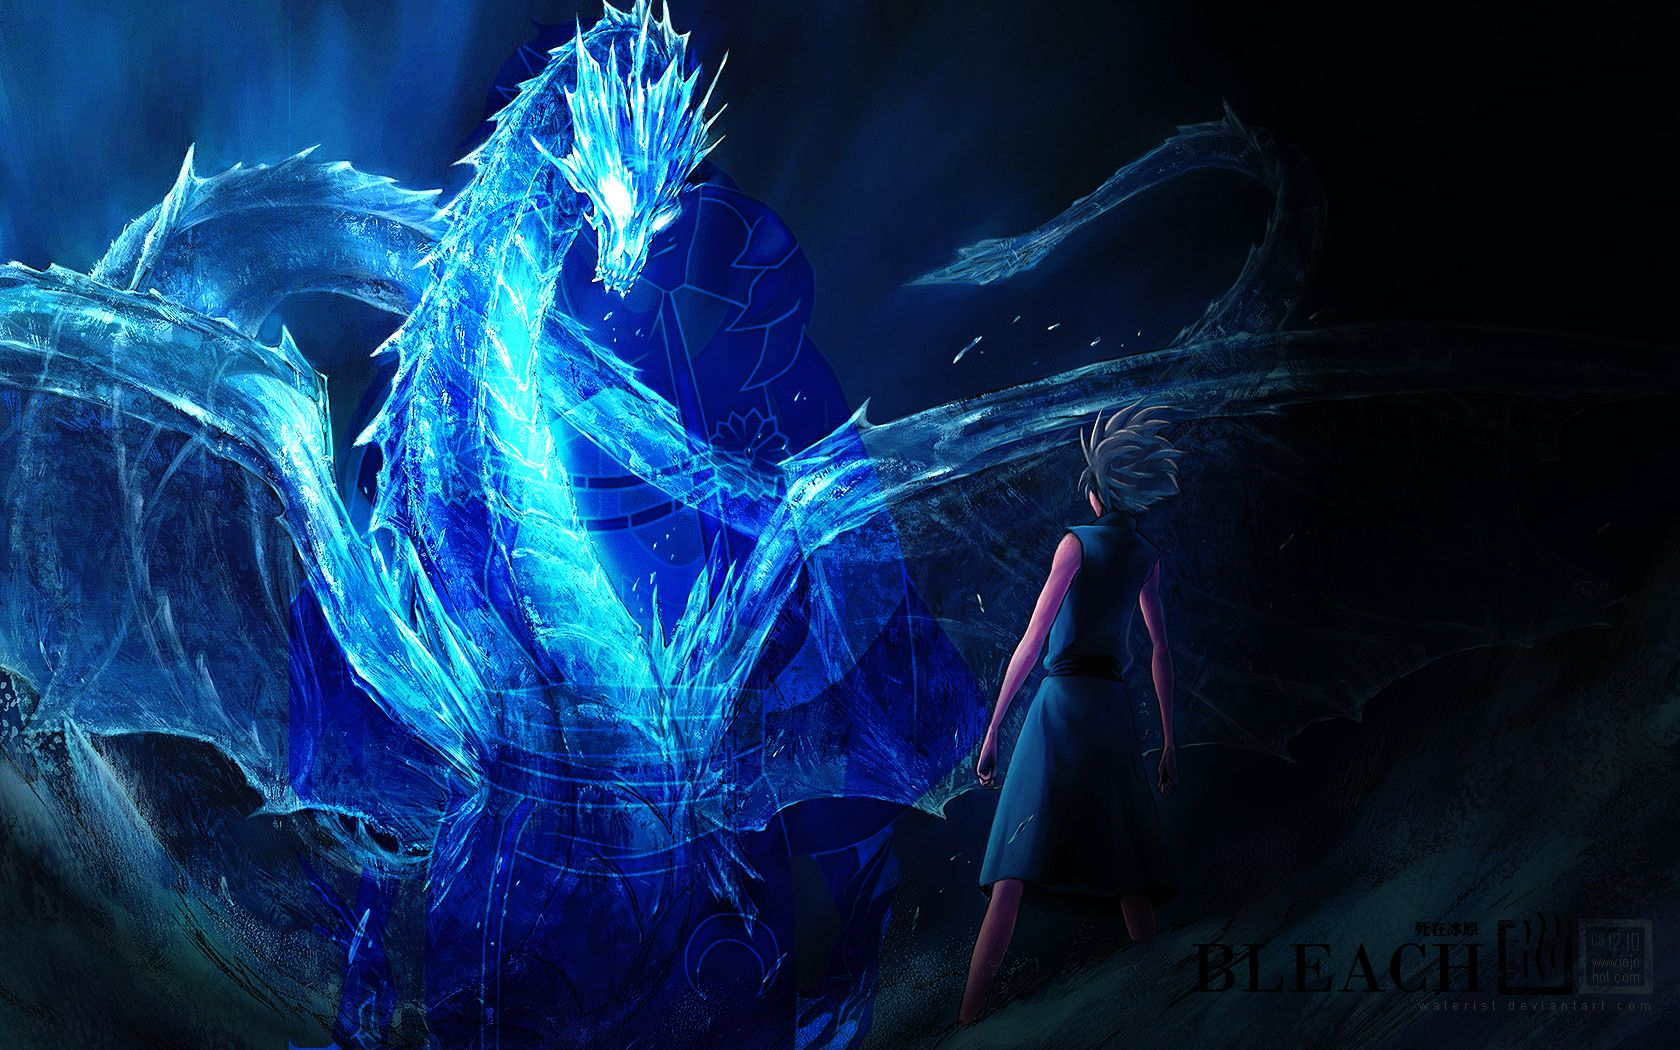 Wallpaper download dragon - Blue Dragon Hd Wallpapers Free Download Latest Blue Dragon Hd Wallpapers For Computer Mobile